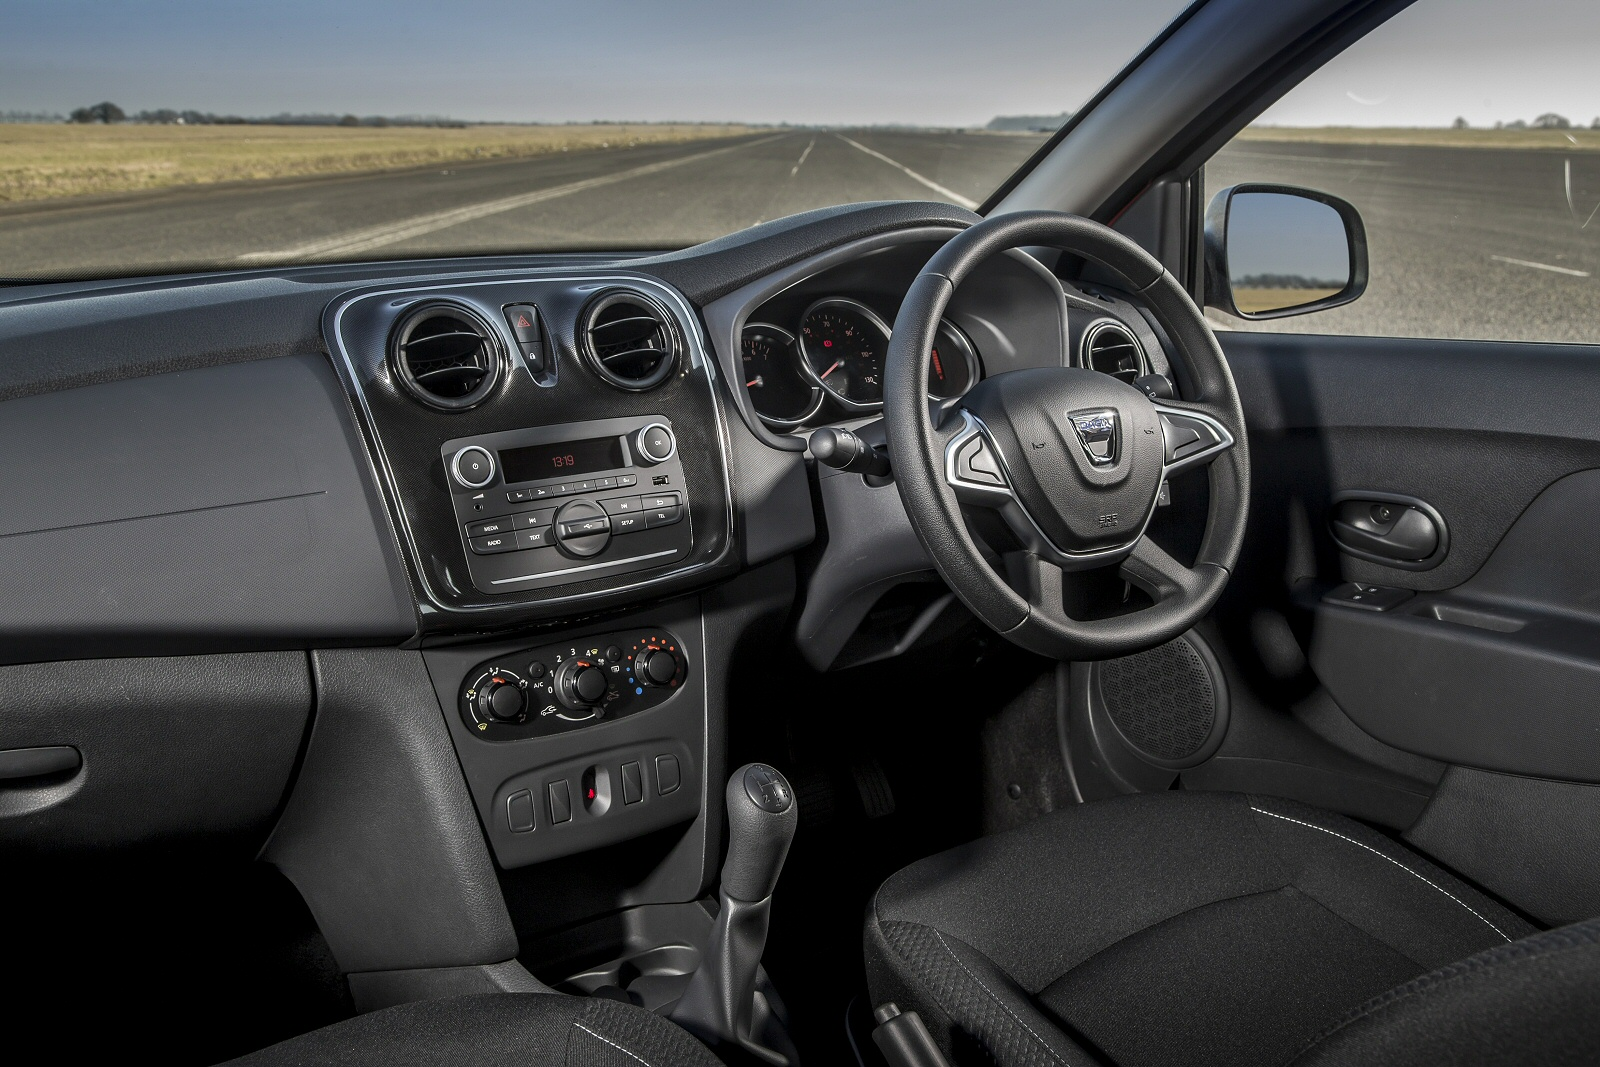 New Dacia Sandero Stepway 1.5 Dci Ambiance 5Dr Diesel Hatchback for ...